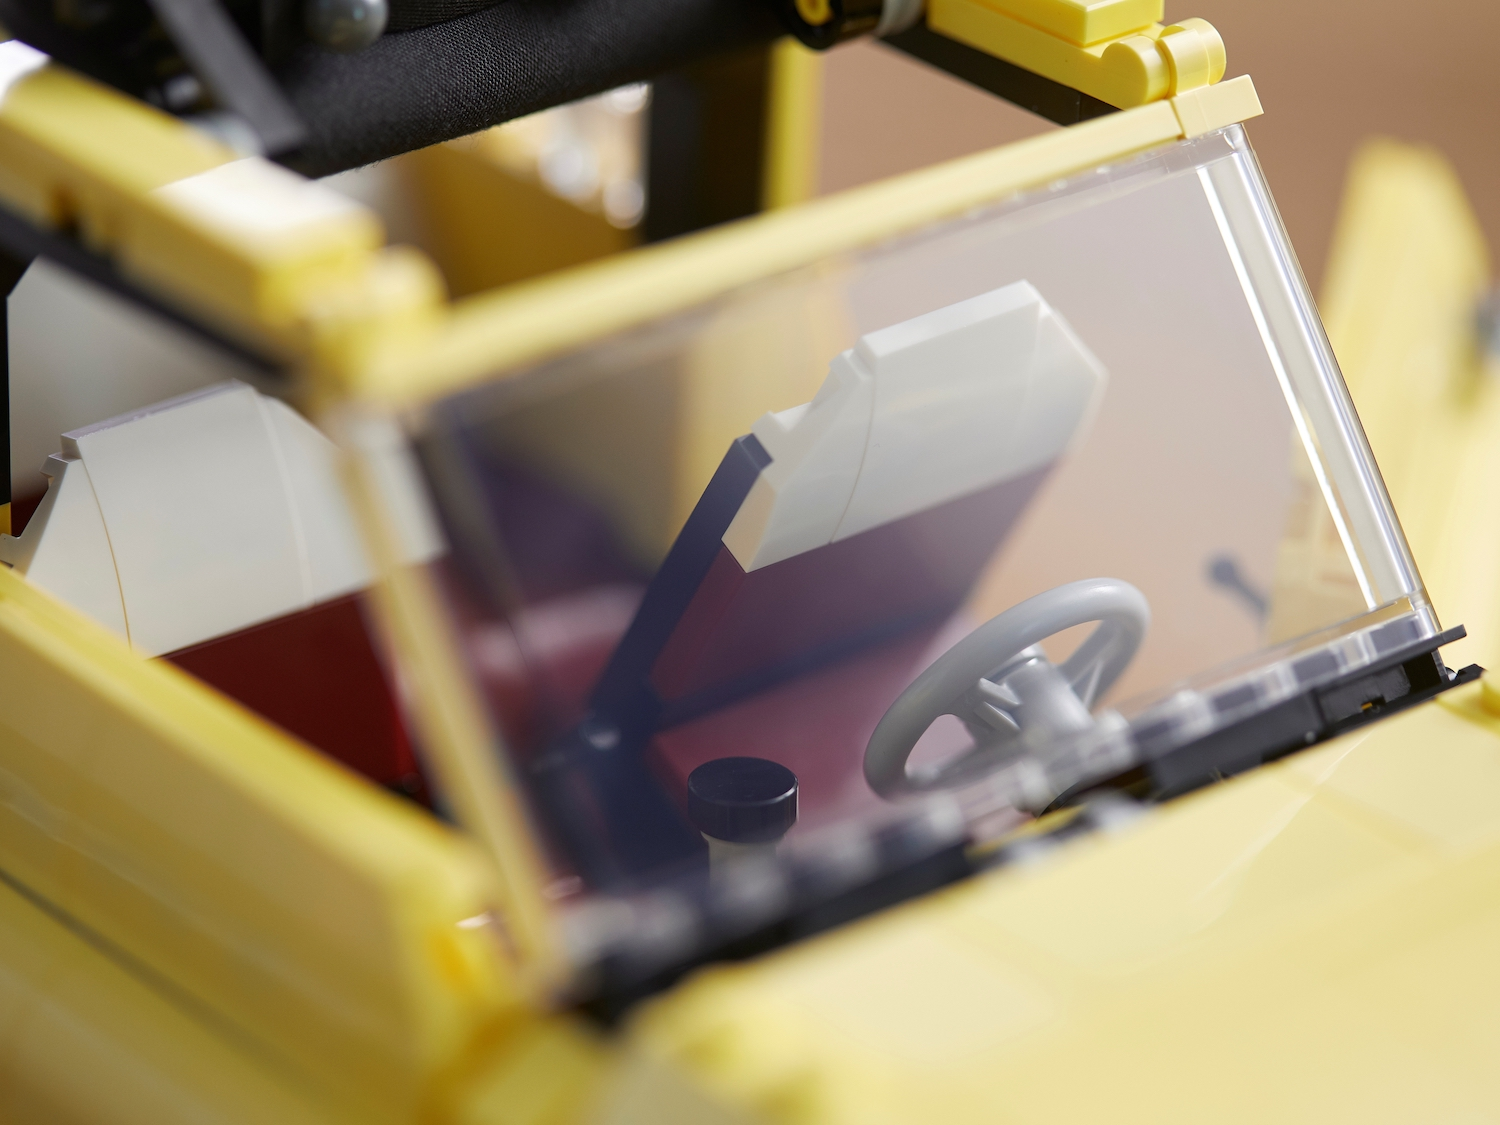 lego fiat 500 toy car front seats through windshield